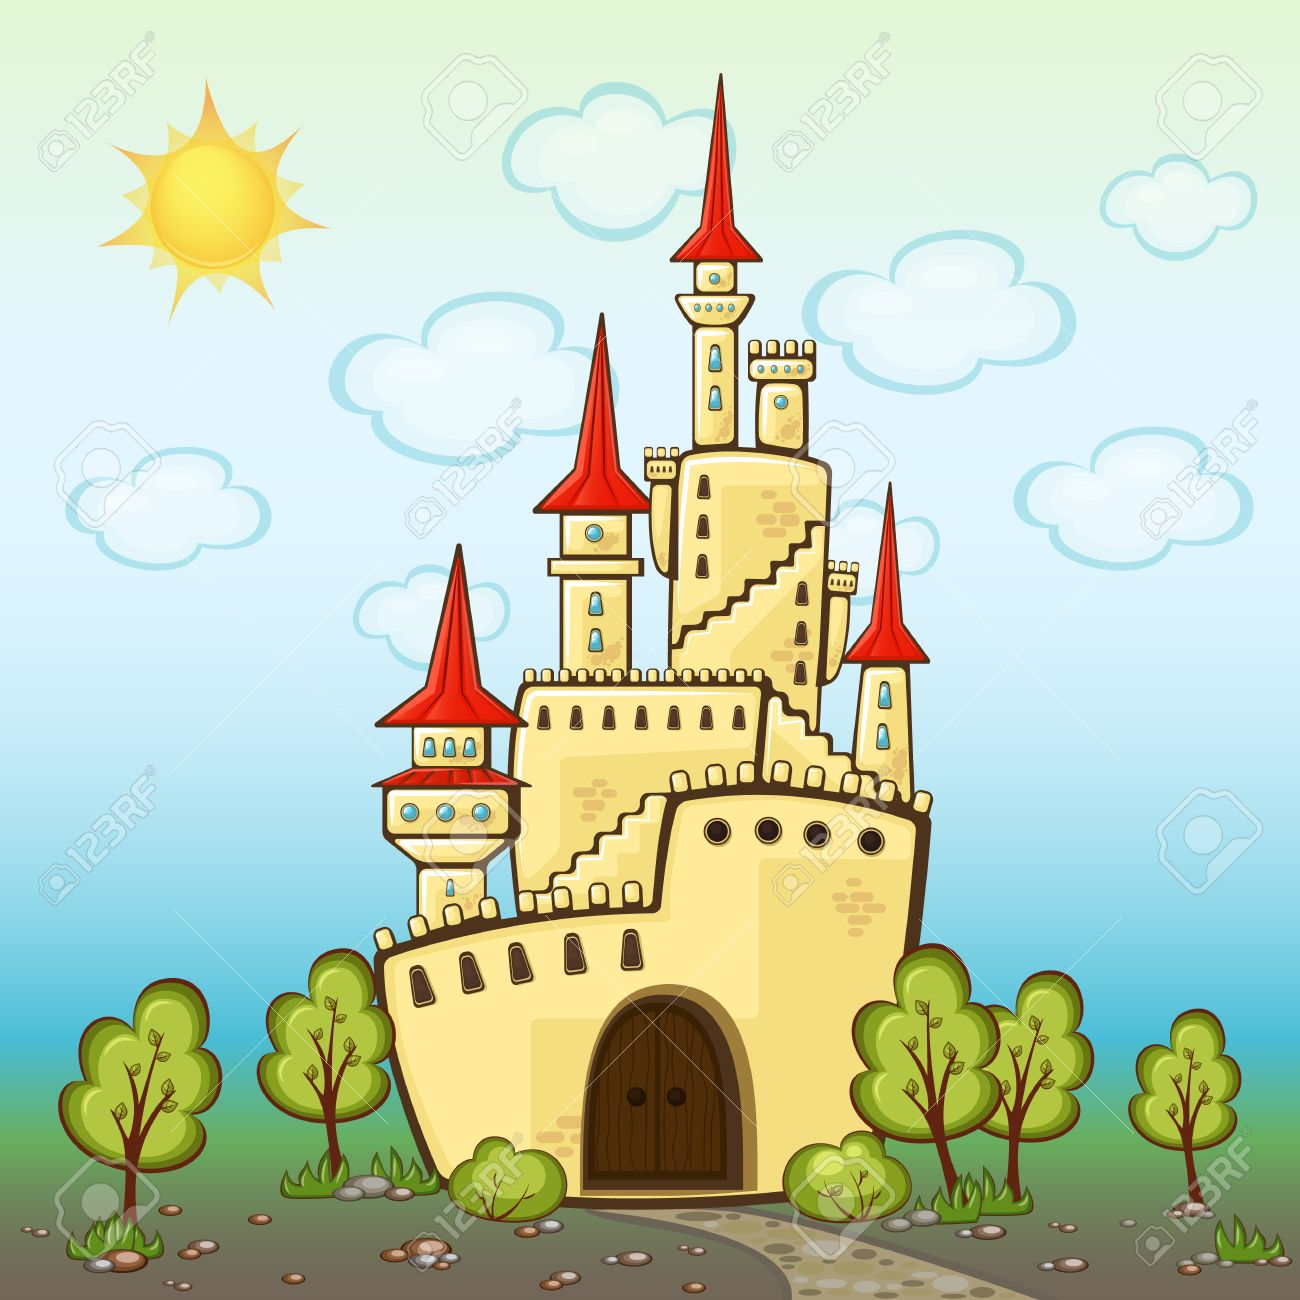 Rooms within the home cartoon 187 tinkytyler org stock photos - Castle In Cartoon Style With Sharp Roofs And Towers Children S Background With A Fabulous Palace